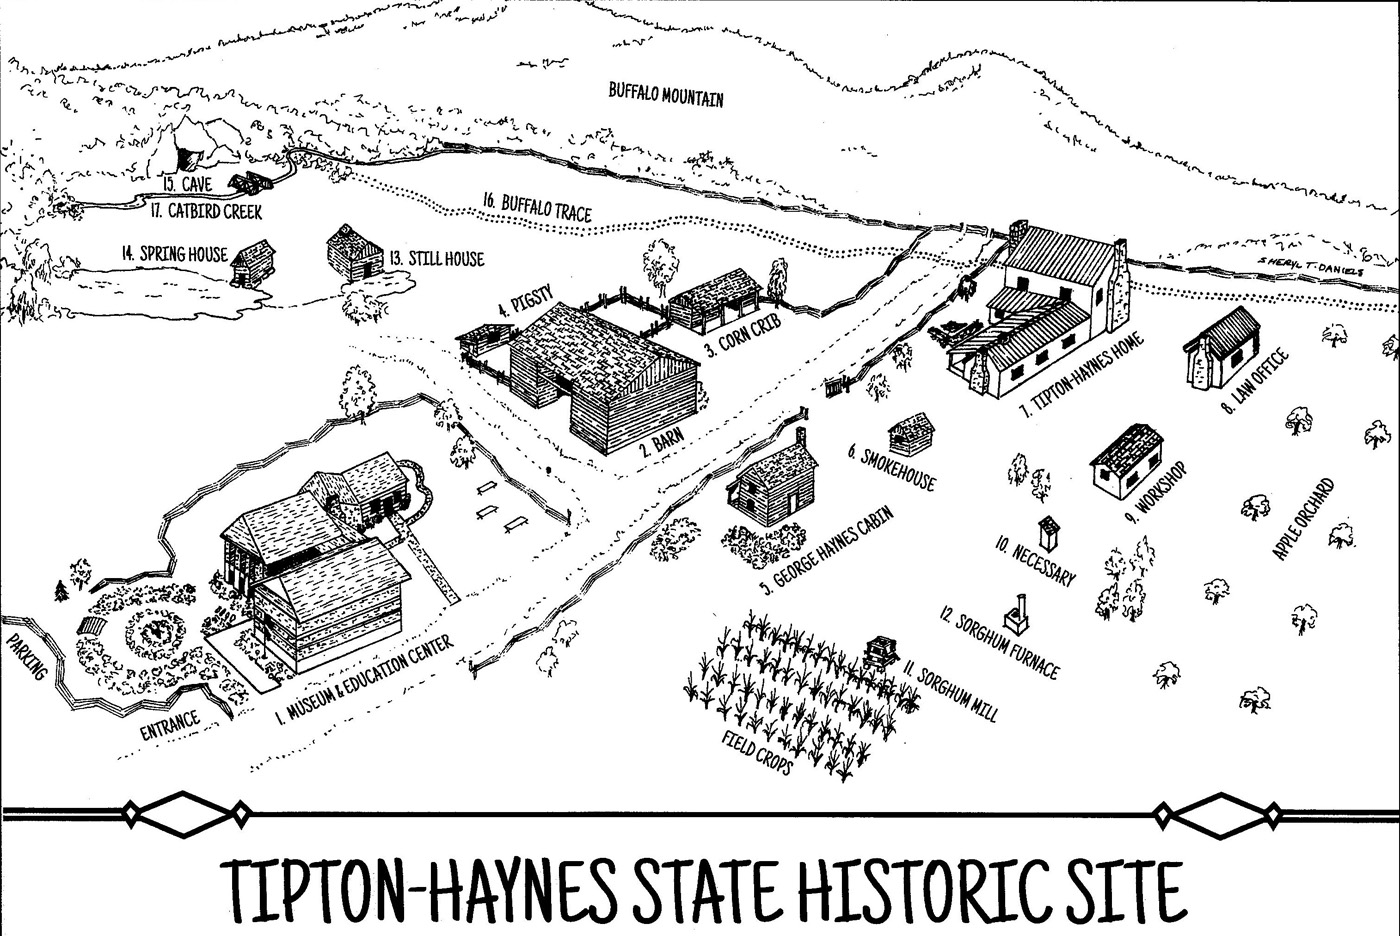 Tipton-Haynes Self-Guided Map